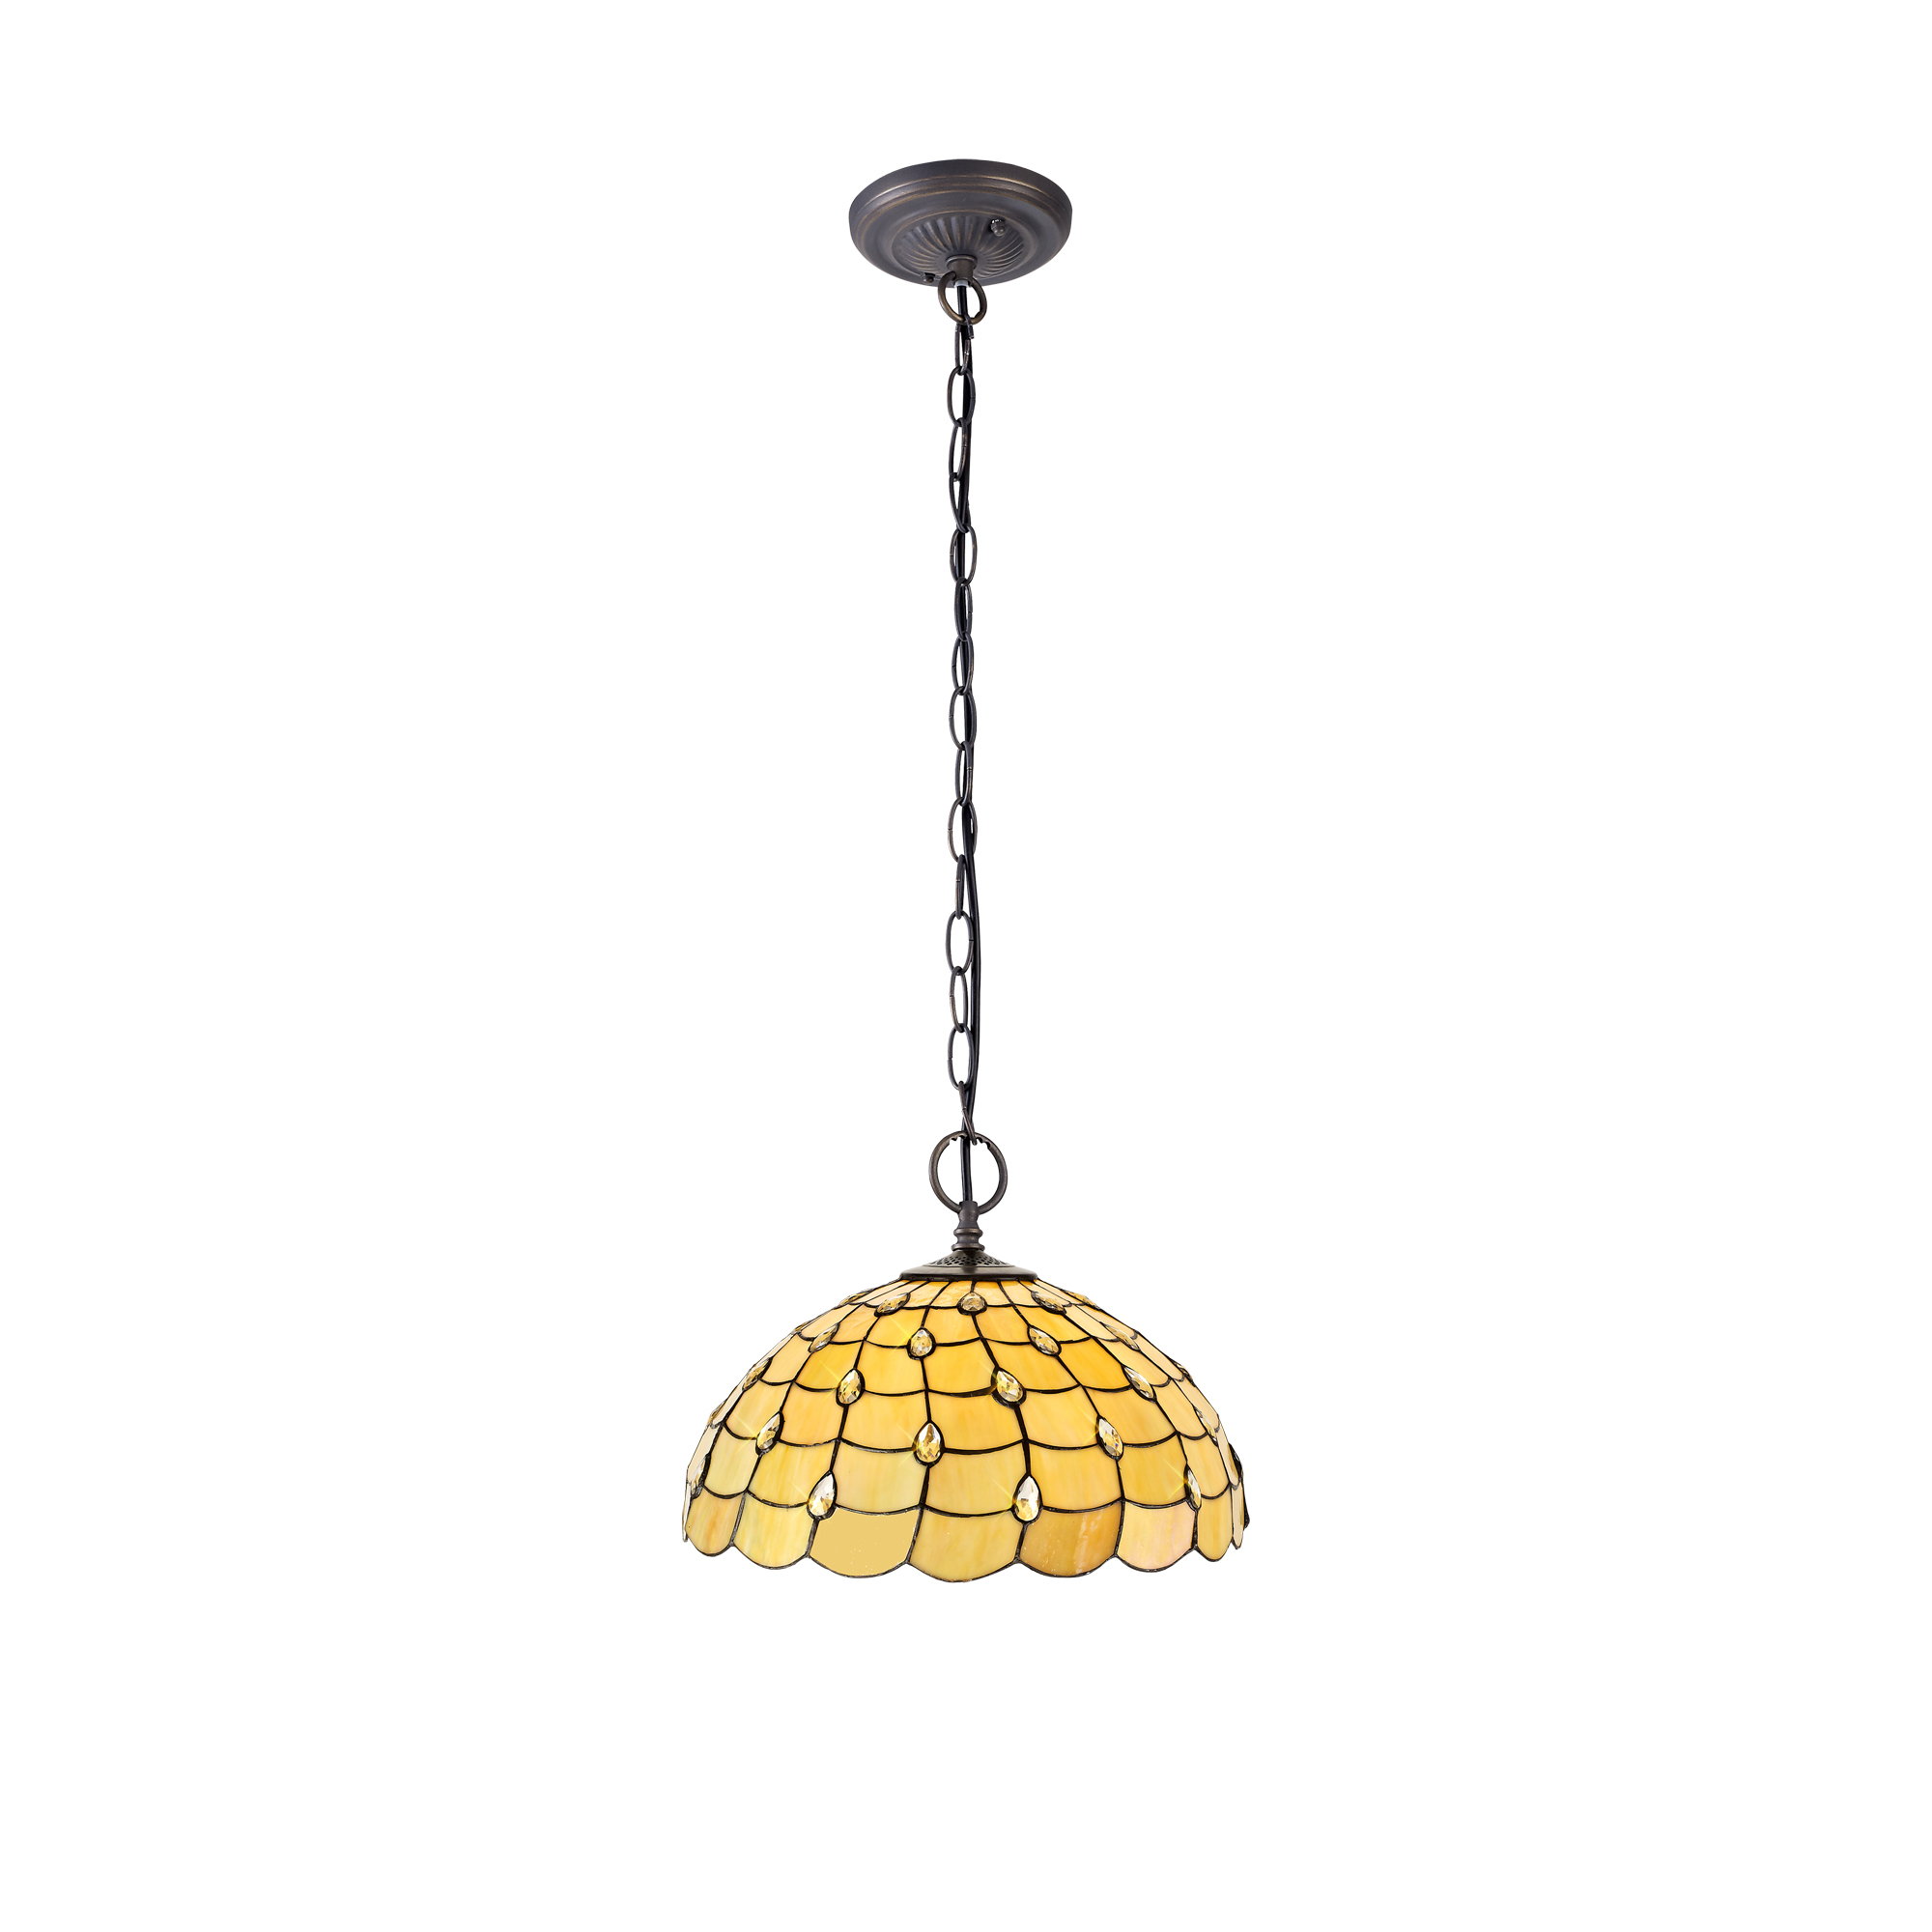 2 Light Downlighter Pendant E27 With 50cm Tiffany Shade, Beige/Clear Crystal/Aged Antique Brass